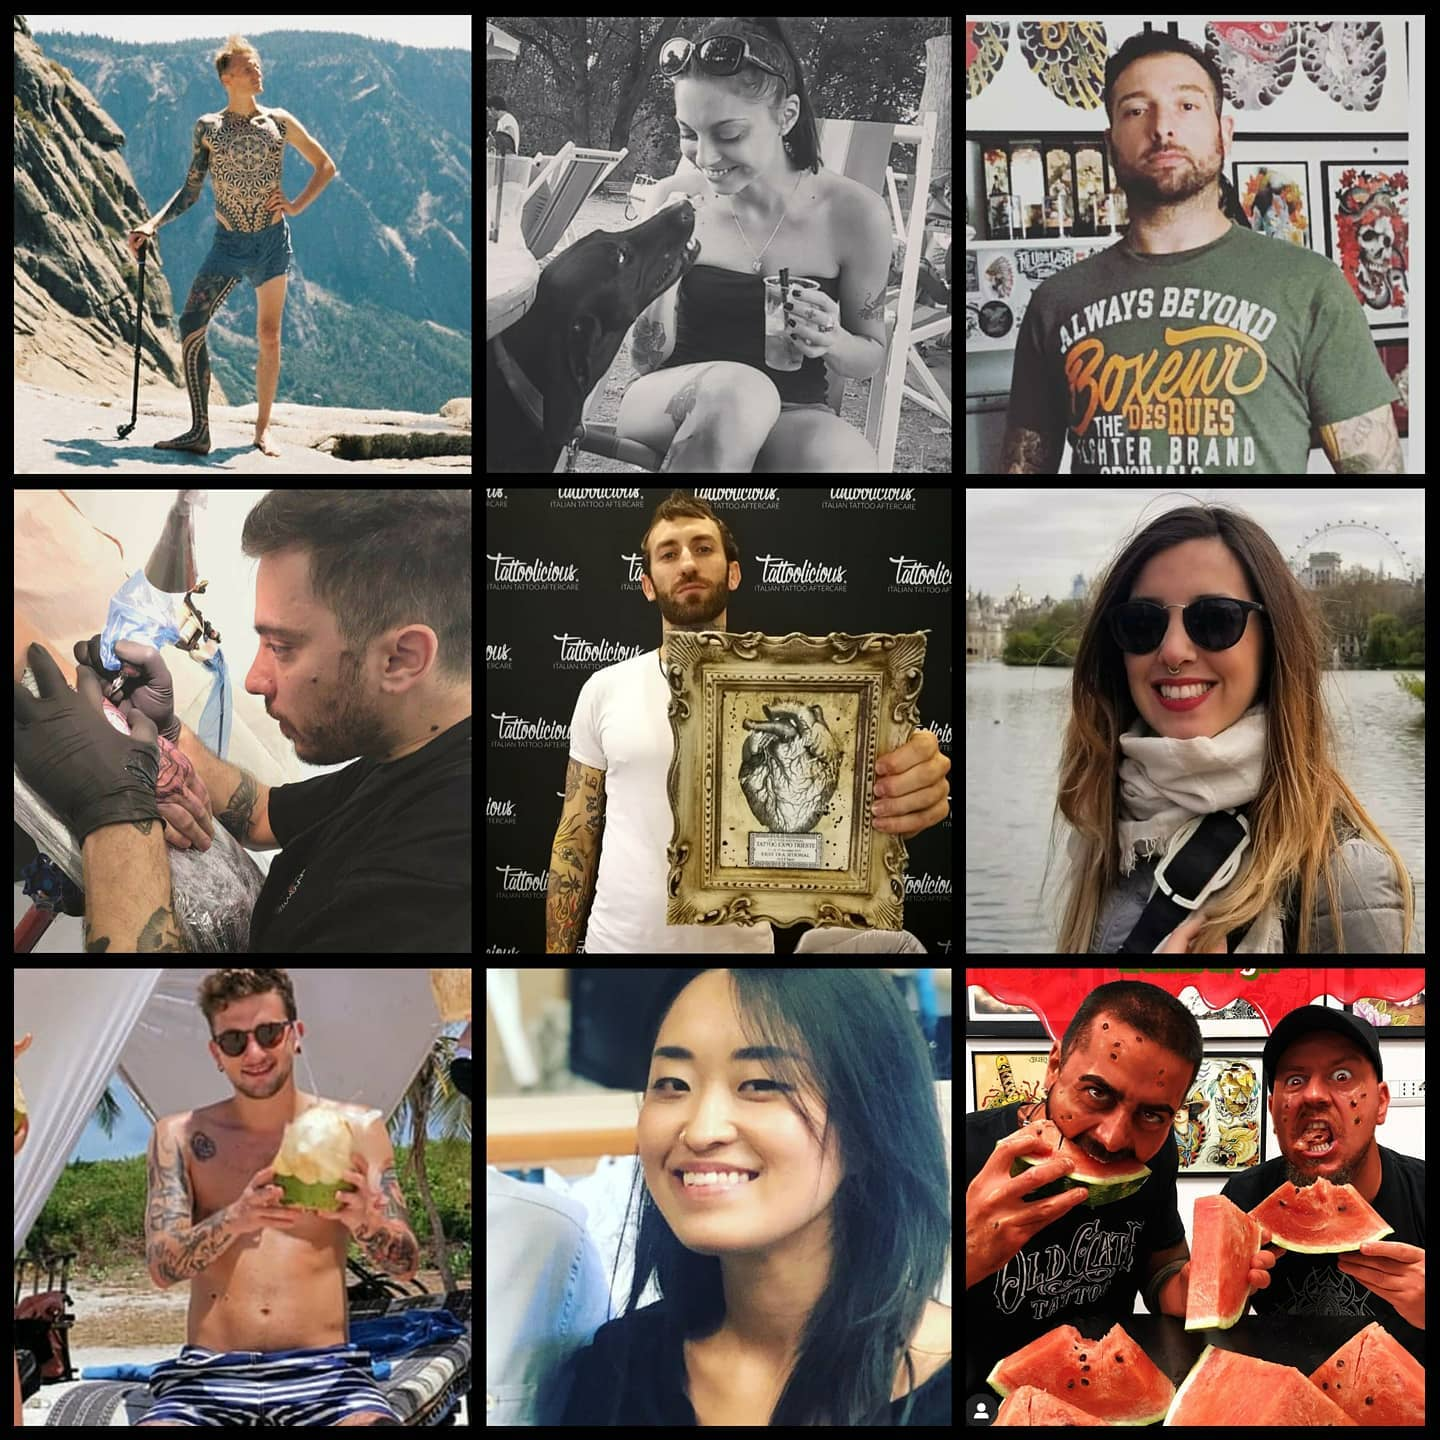 Shout out to these legends. Unfortunately they have all had to cancel their guest spots with us due to the Corinavirus but they will all definitely be back! All customers previously booked and affected by the cancellations will get priority for the first slots. Wishing they all stay safe.... Give them a follow!